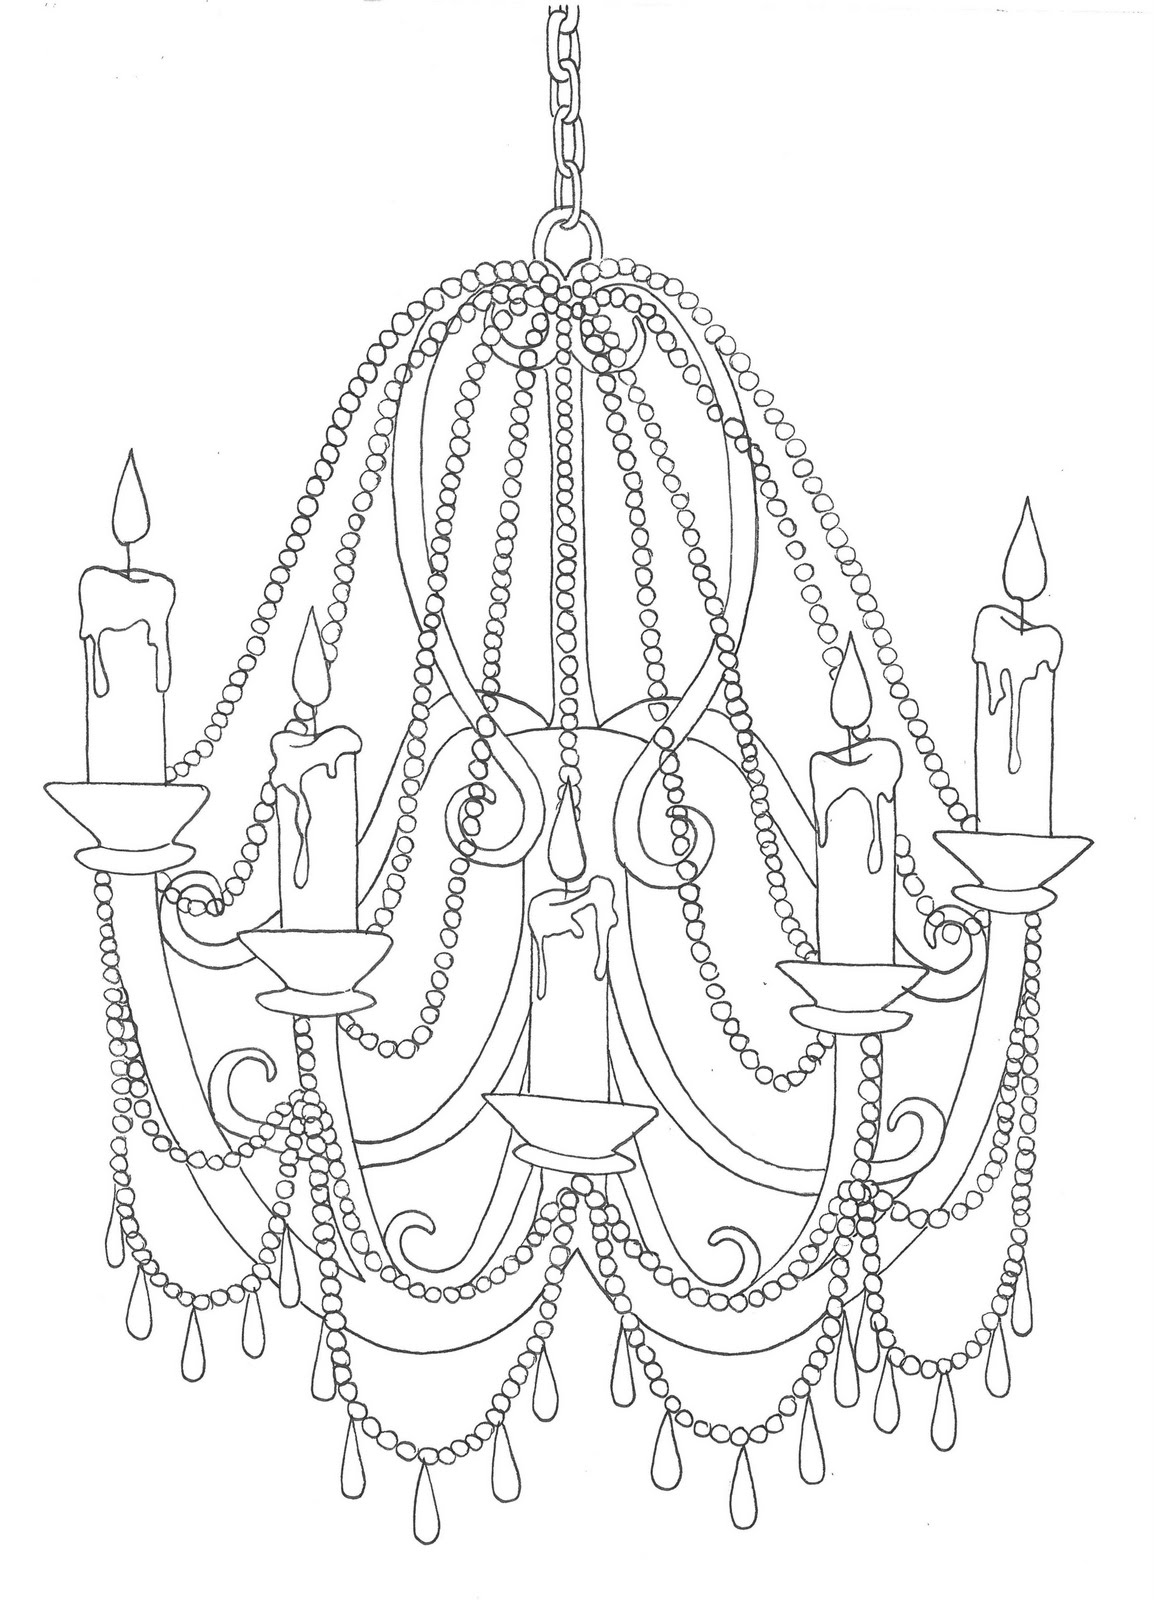 how to draw a chandelier crem bru laa march 2011 a chandelier how draw to